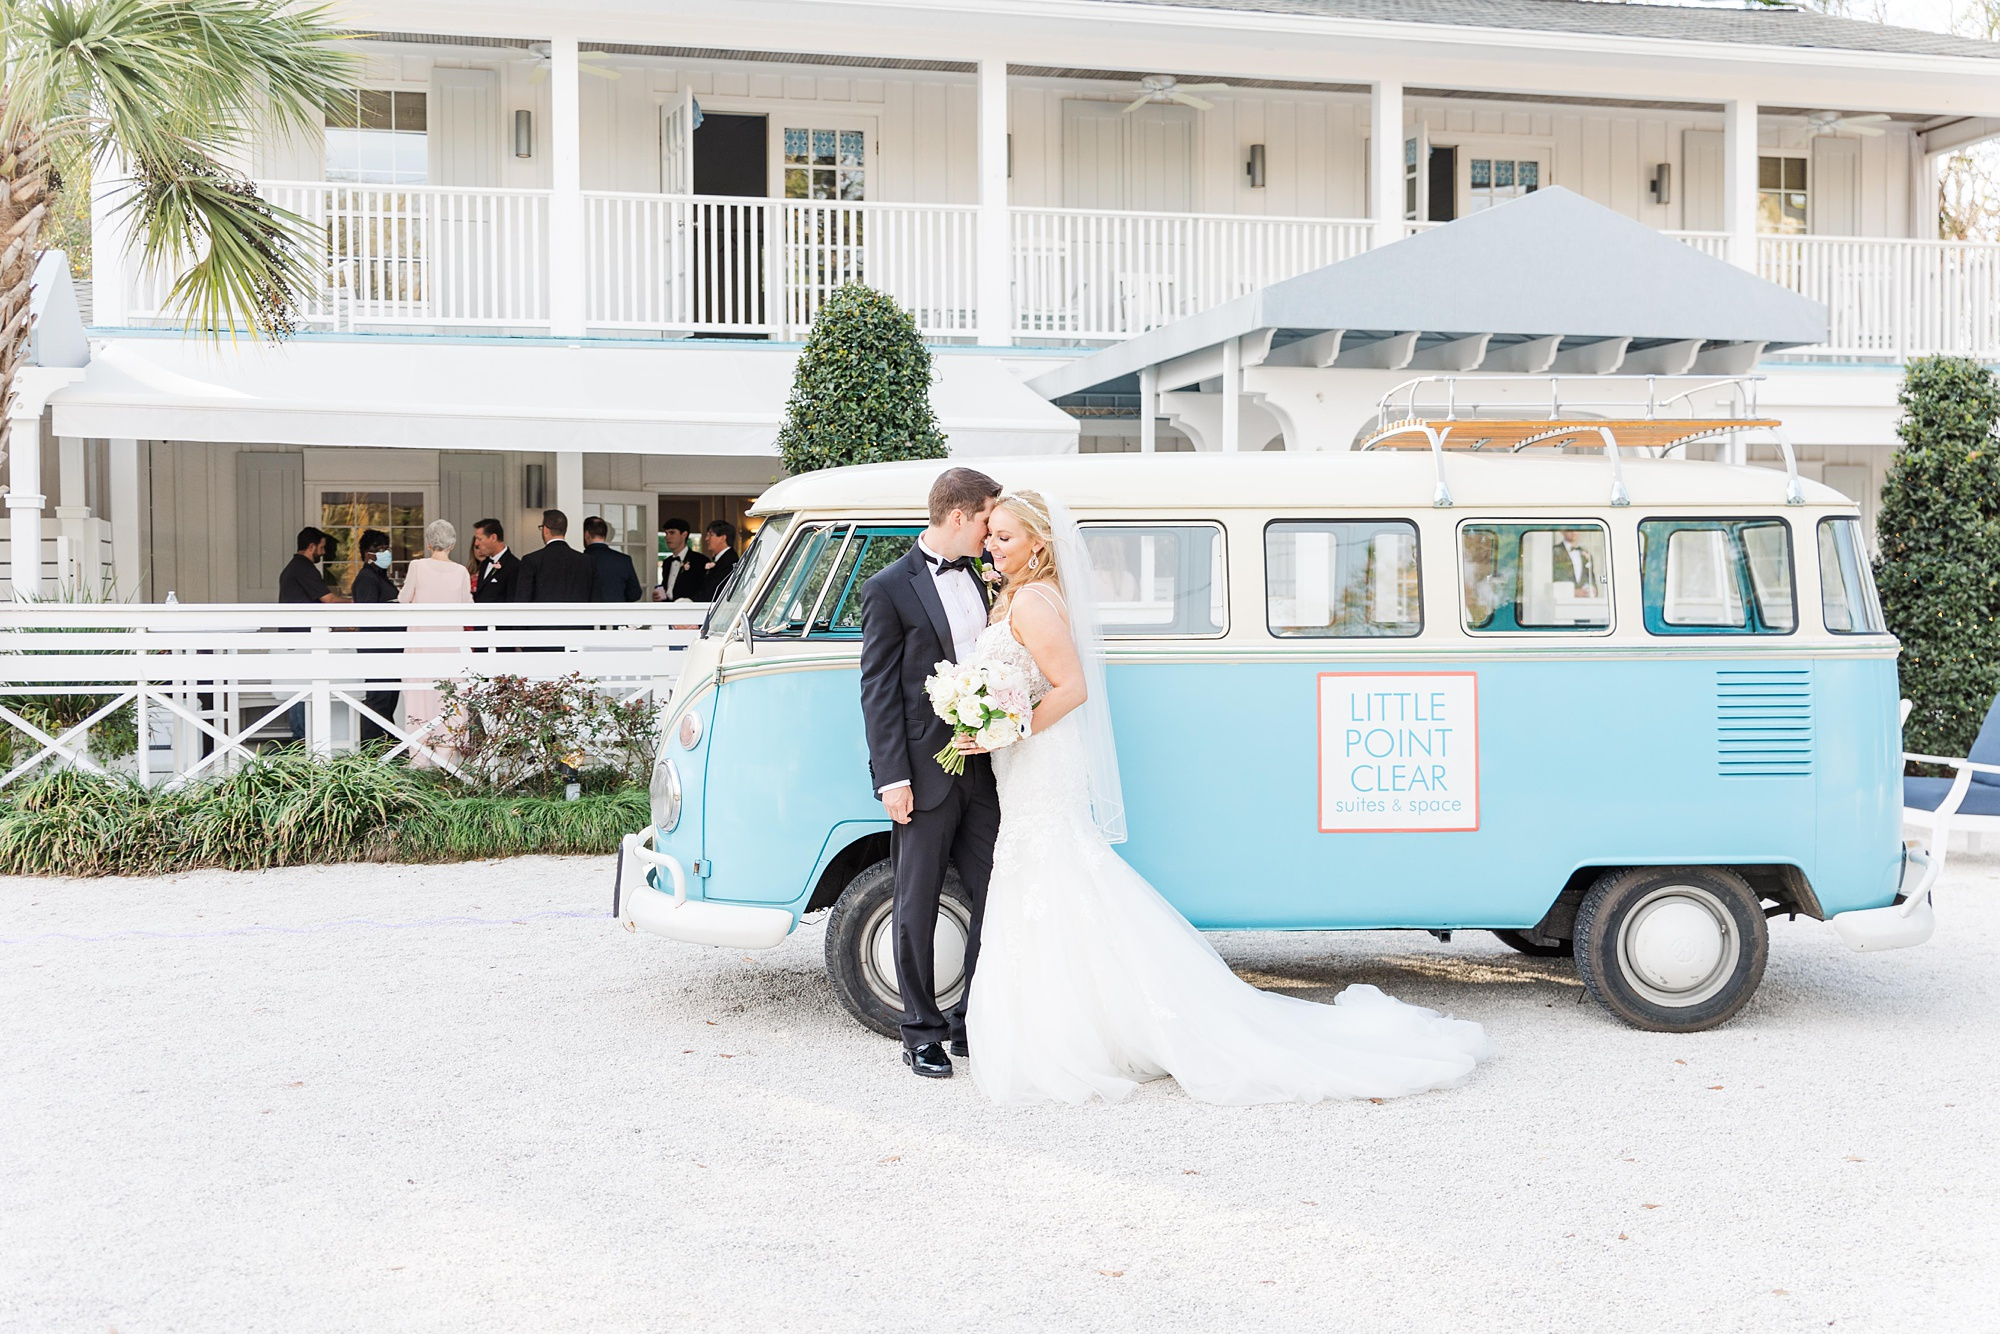 newlyweds pose by VW bus at Little Point Clear